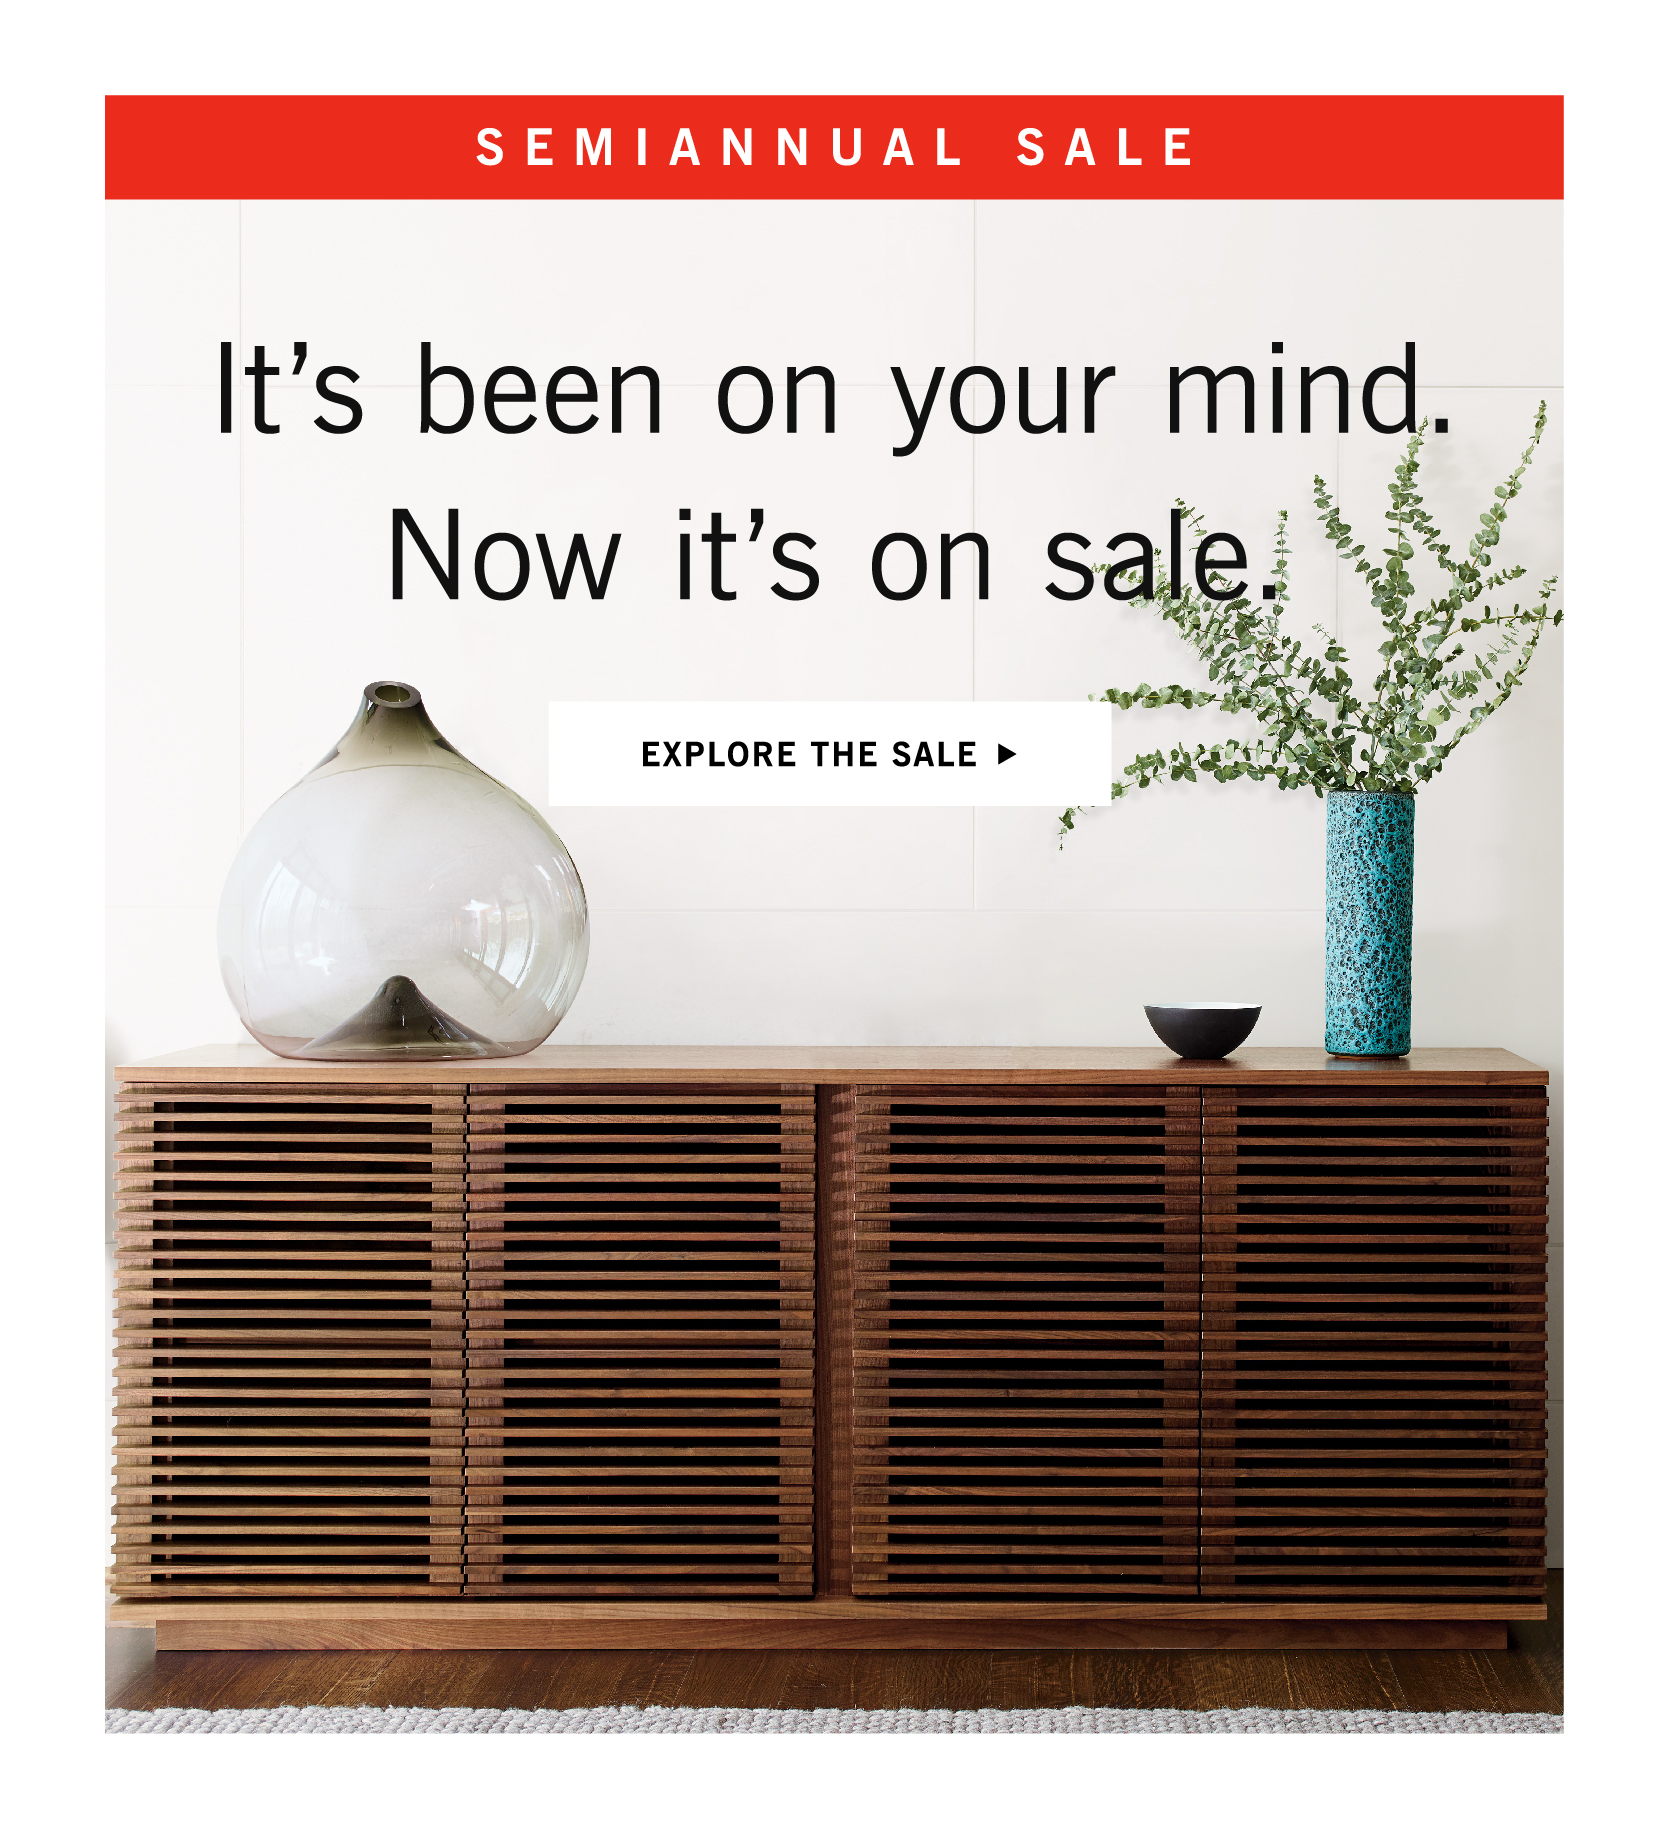 The Semiannual Sale. It's been on your mind. Now it's on sale.